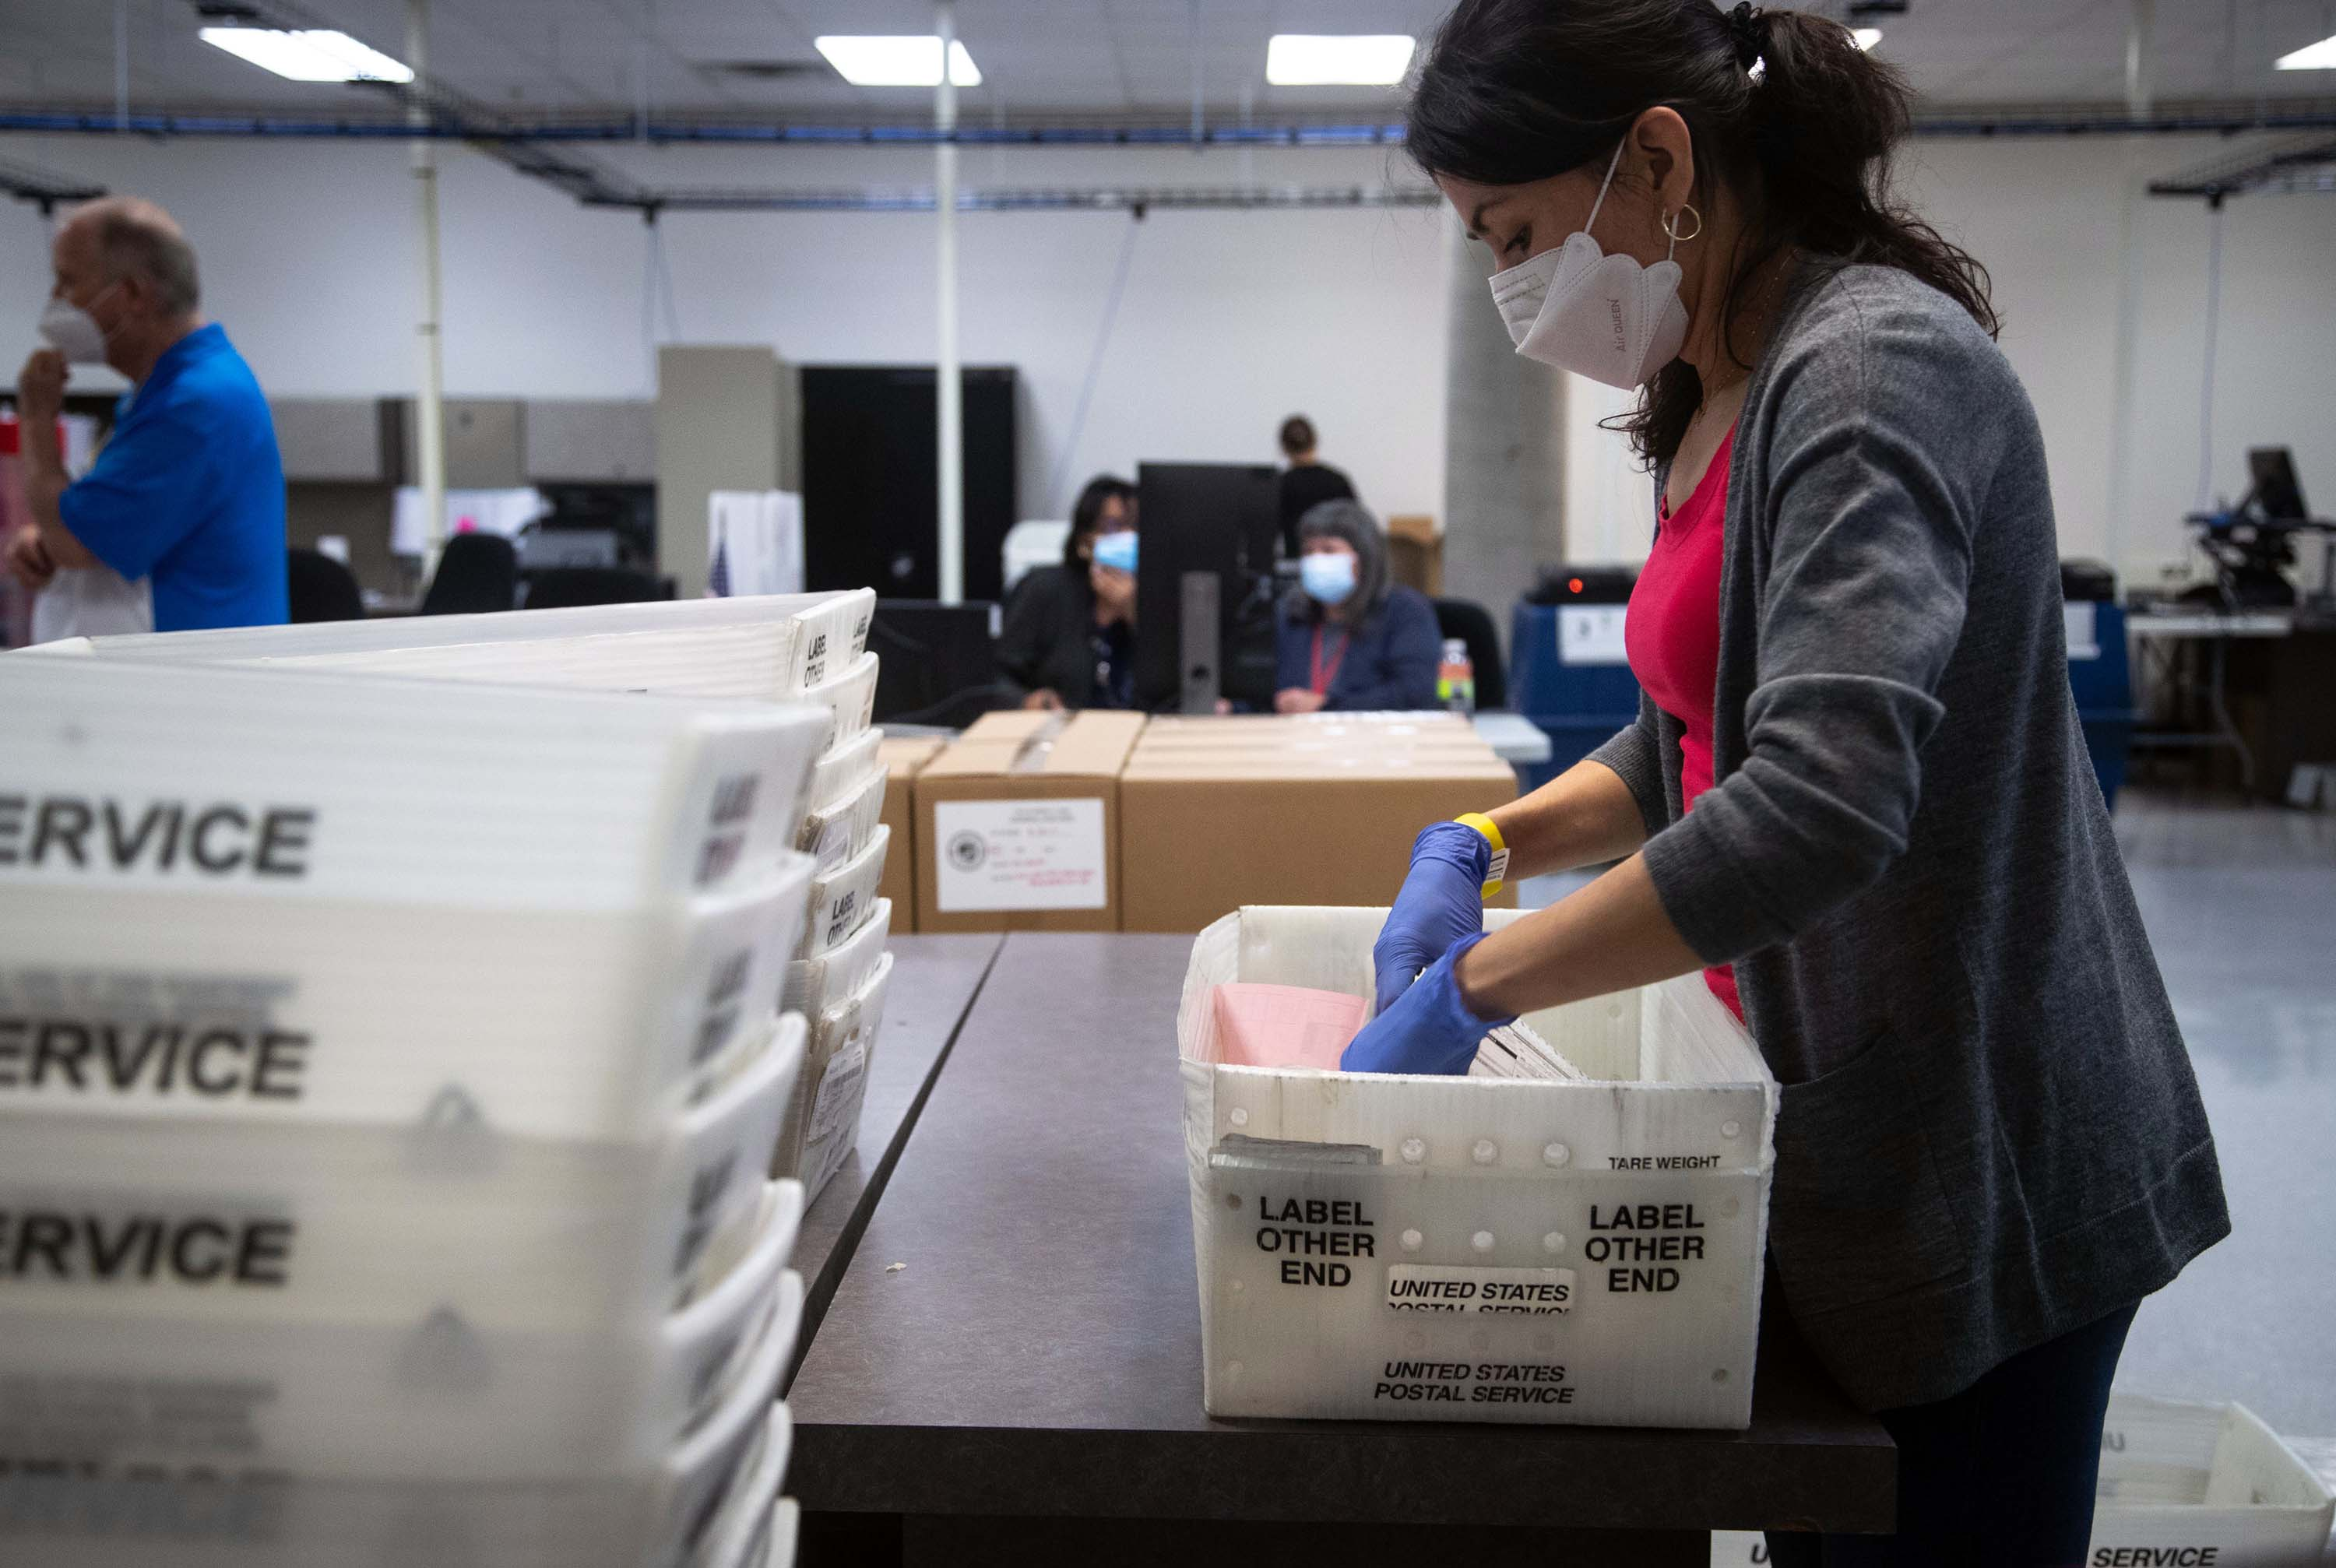 Maricopa County Elections employee Alba Parra tabulates early ballots at the Maricopa County Elections Headquarters in Phoenix, Arizona on November 4.